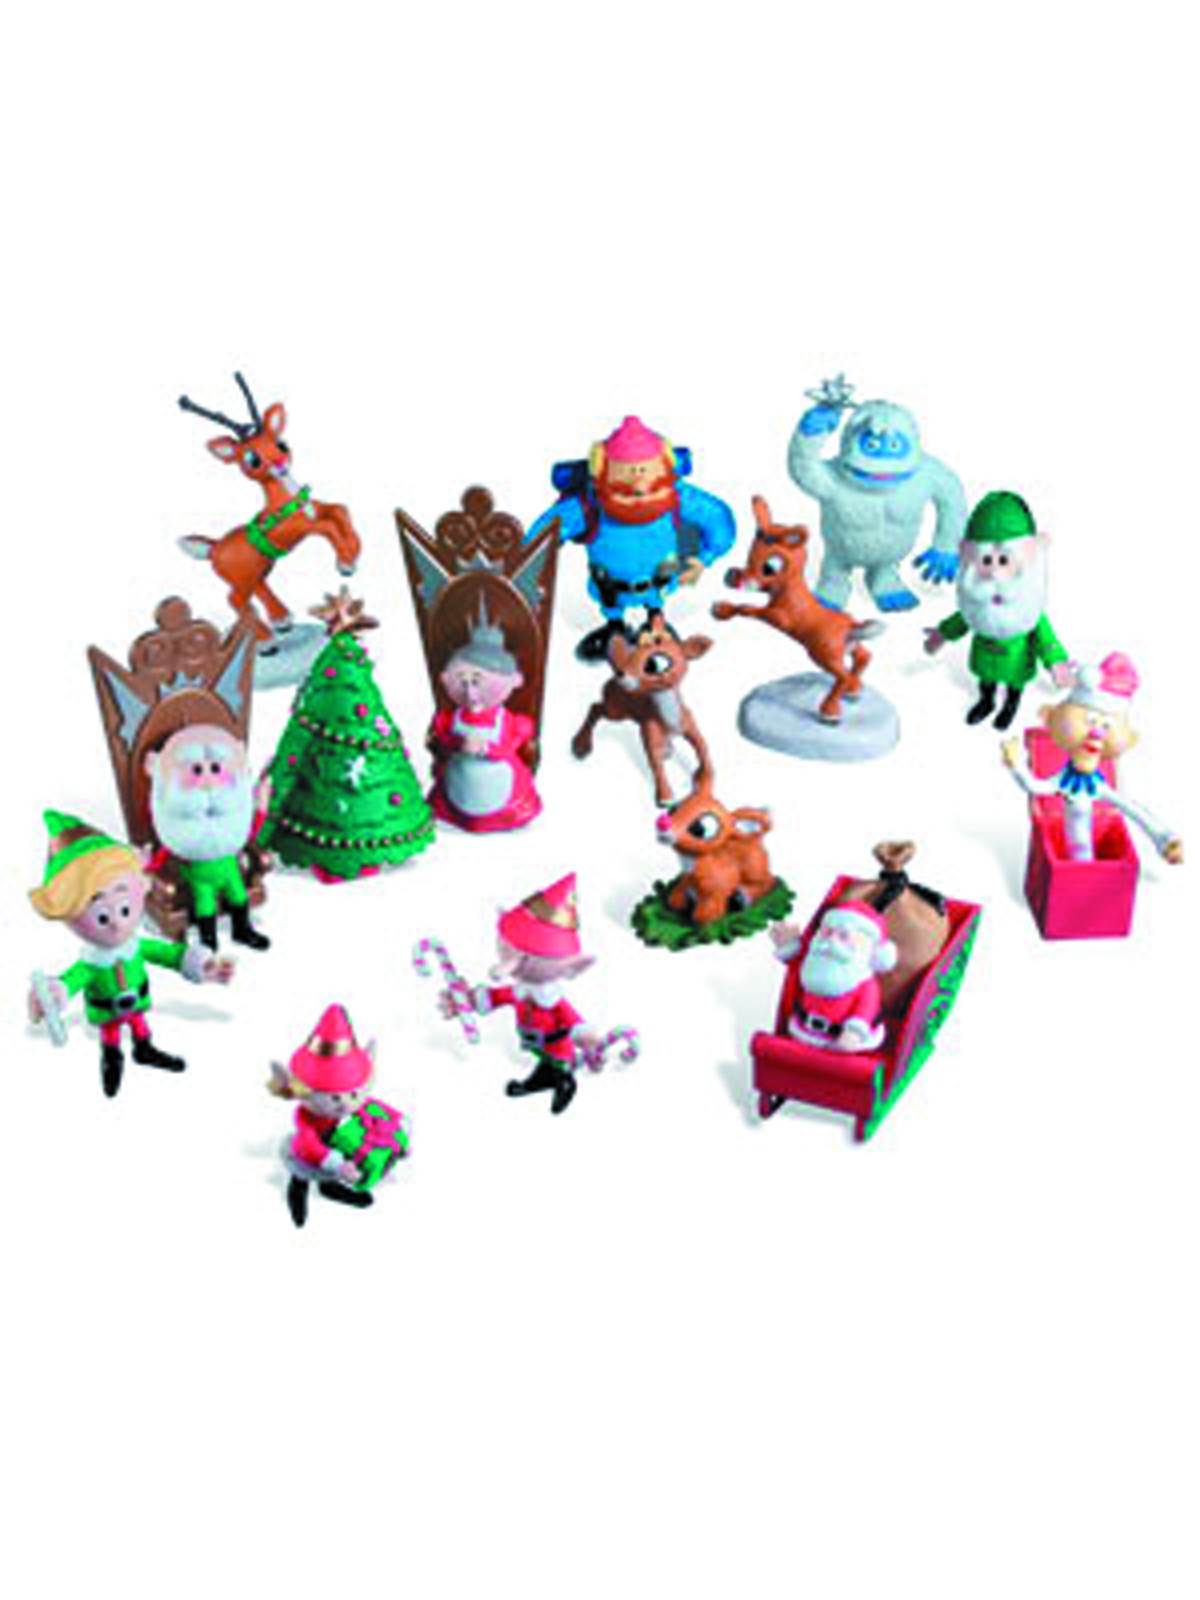 RUDOLPH 2014 ULTIMATE FIGURINE COLLECTION